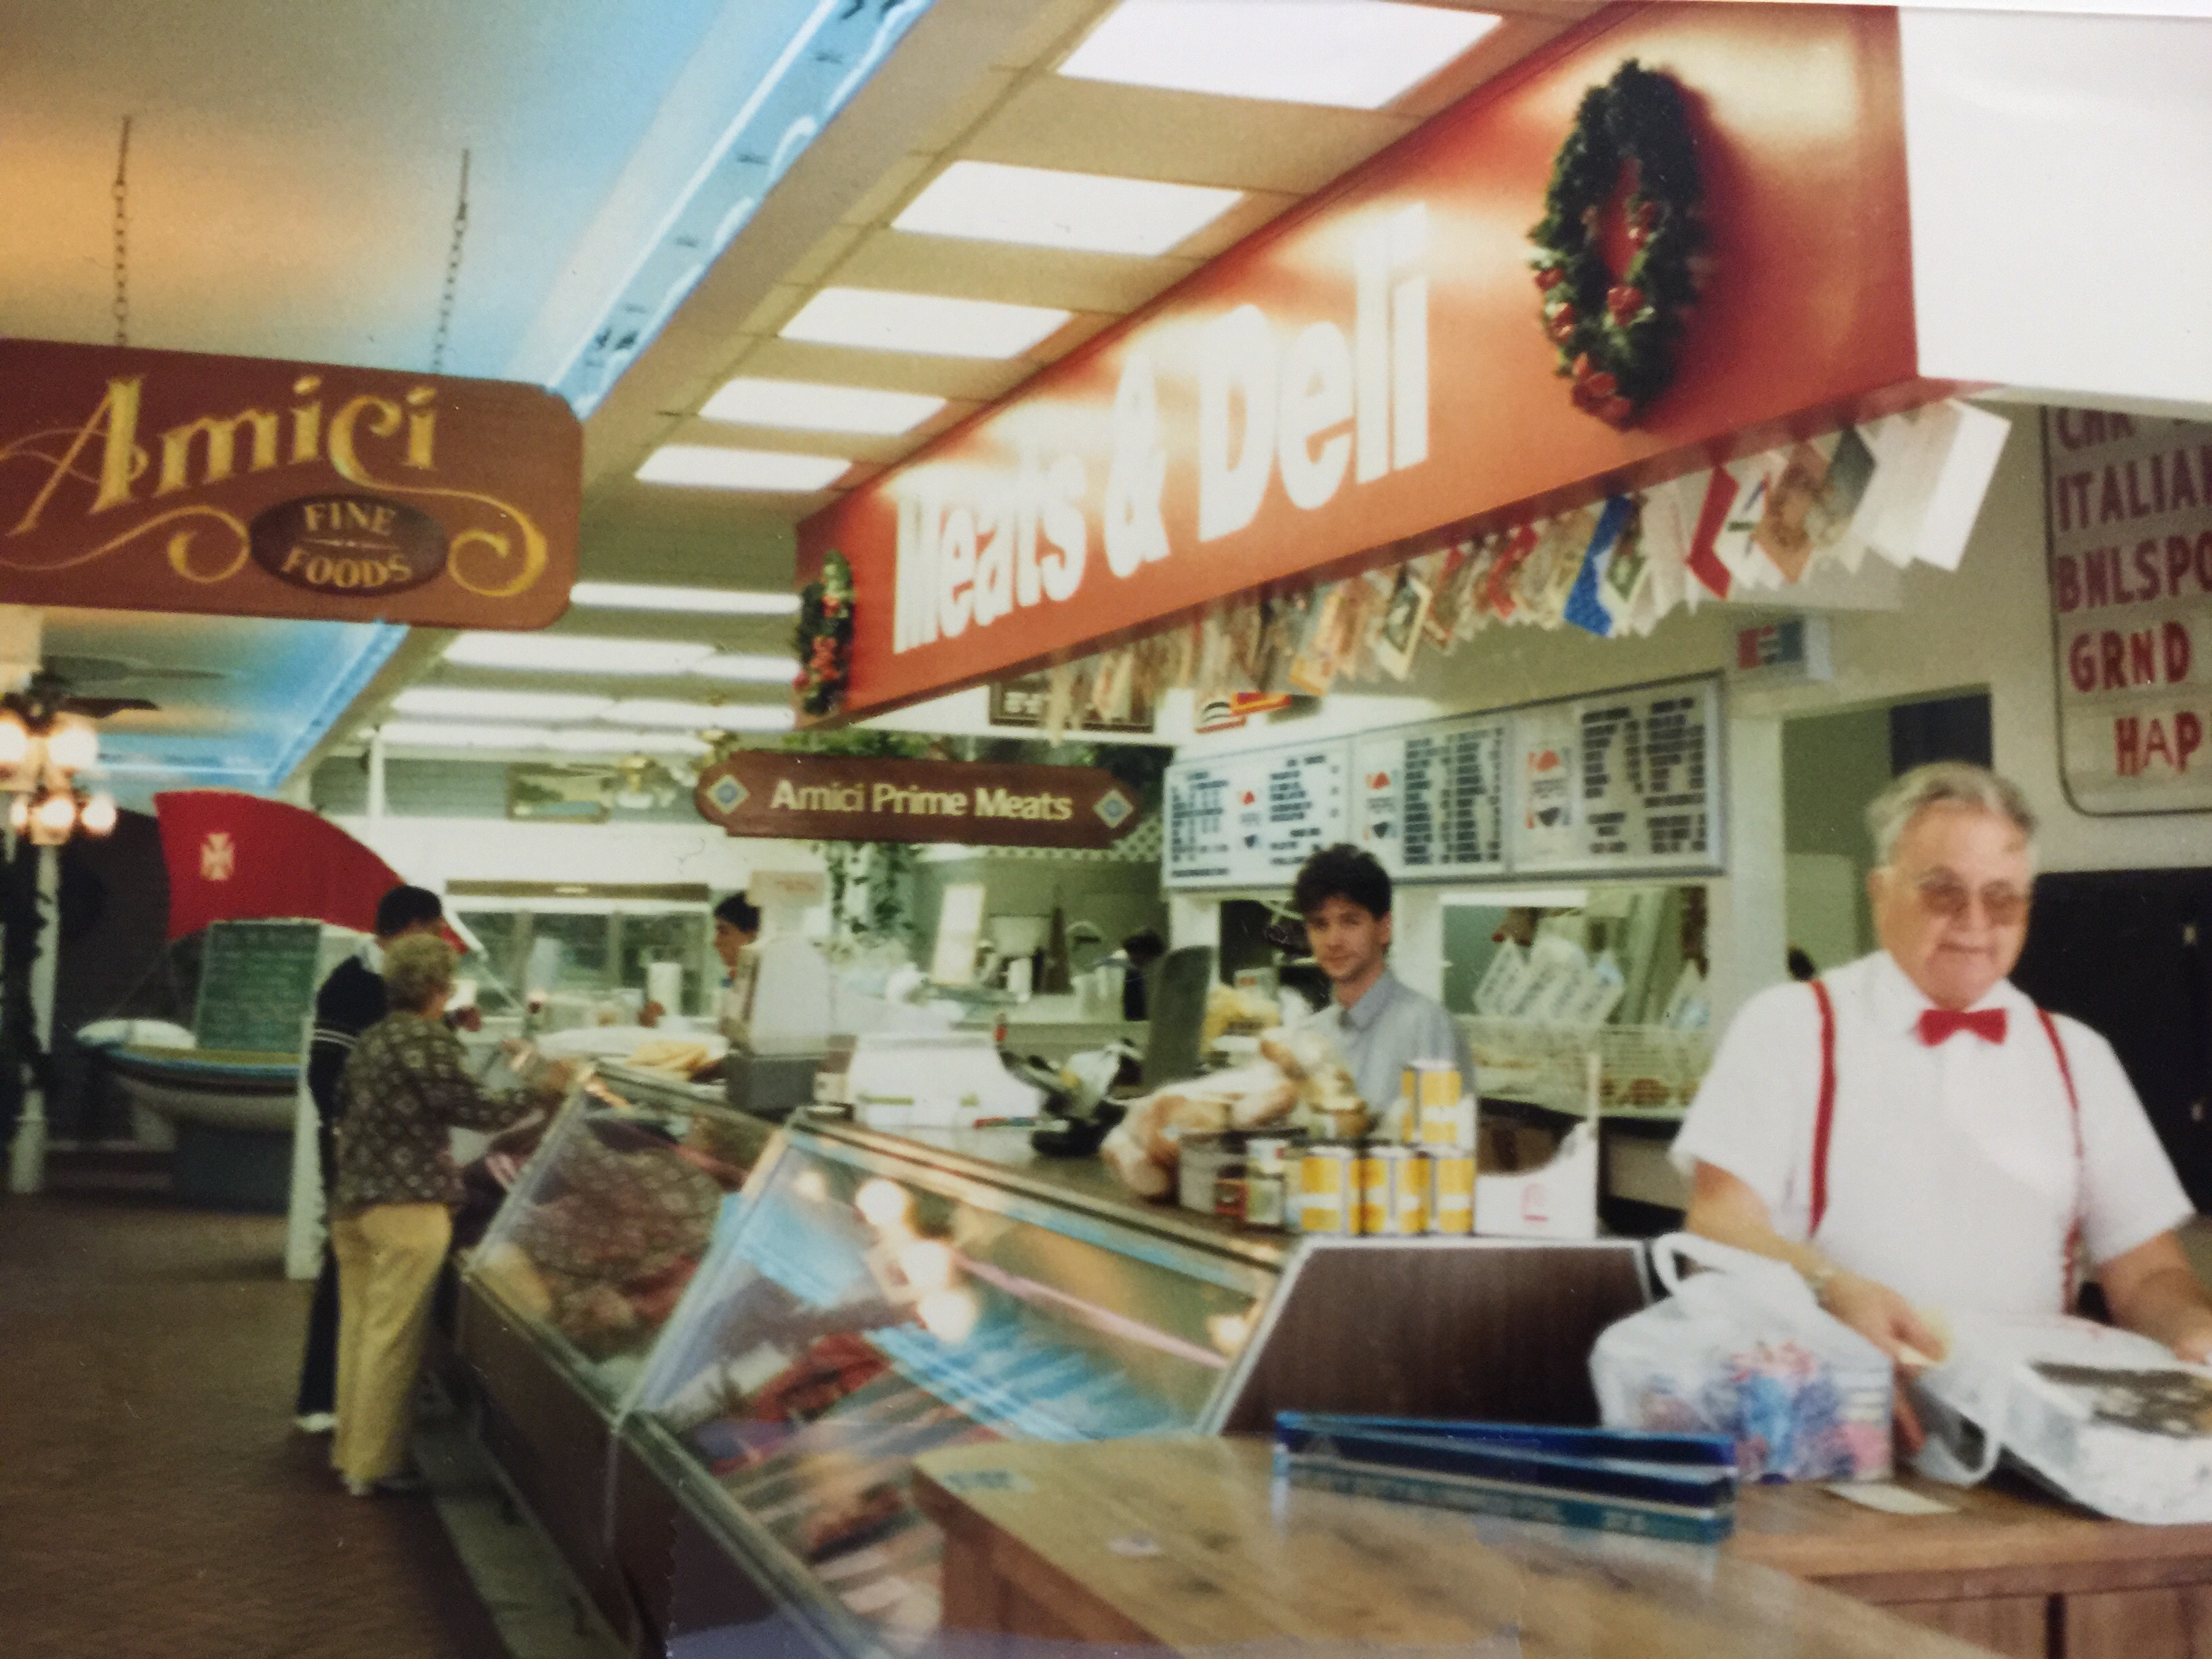 Amici's Butcher Shop from the 1980's